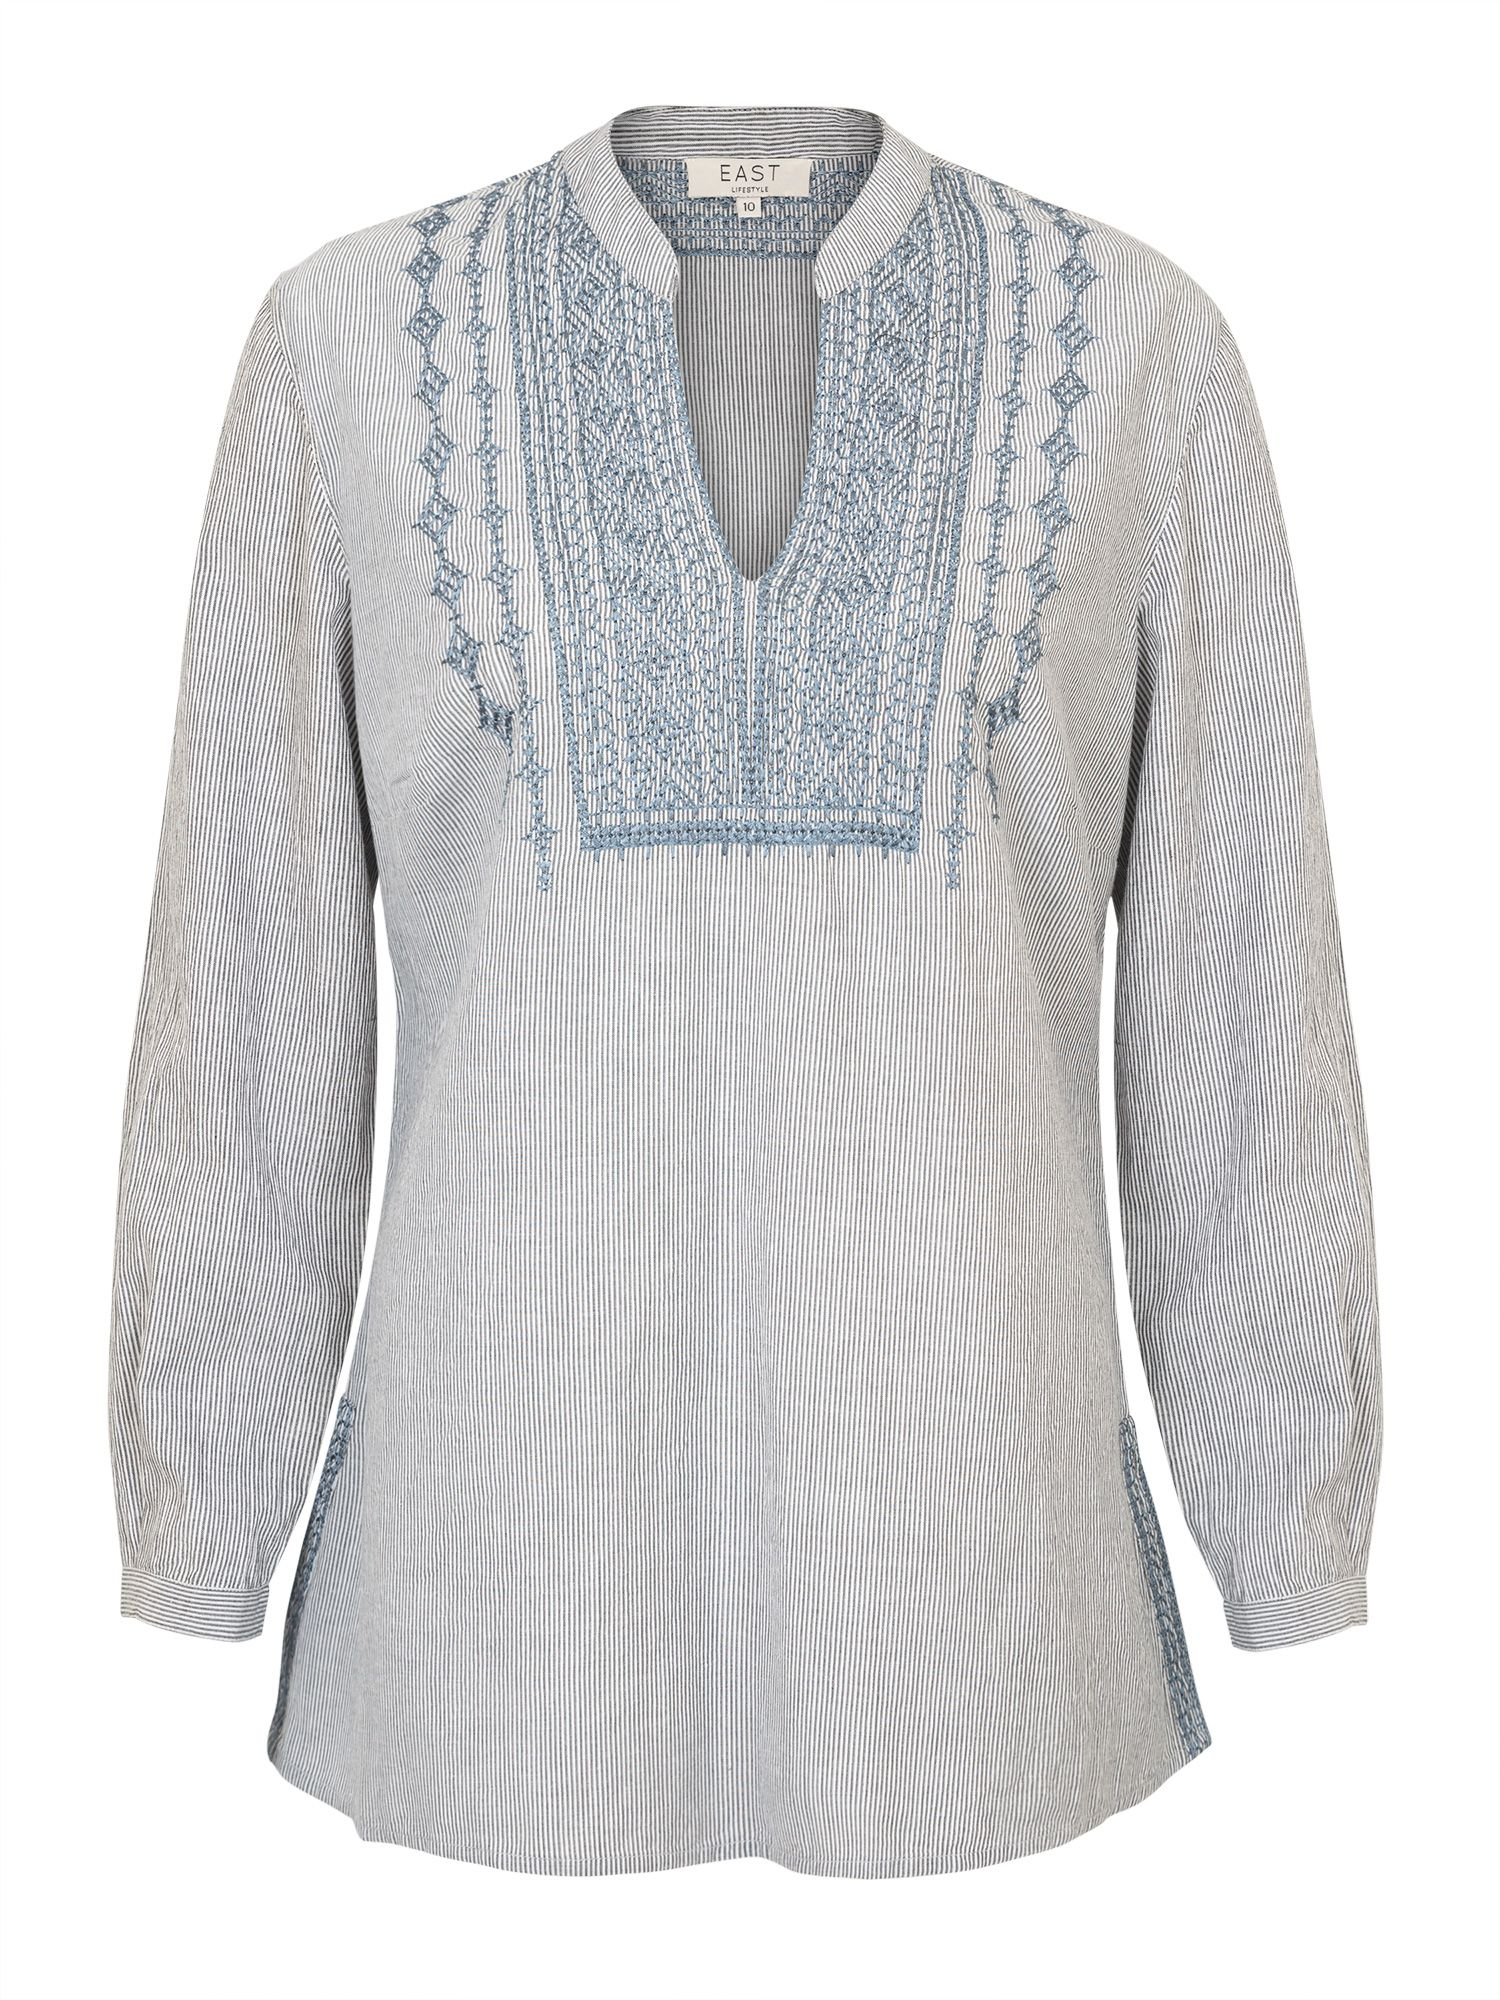 East Stripe Embroidered Shirt, White